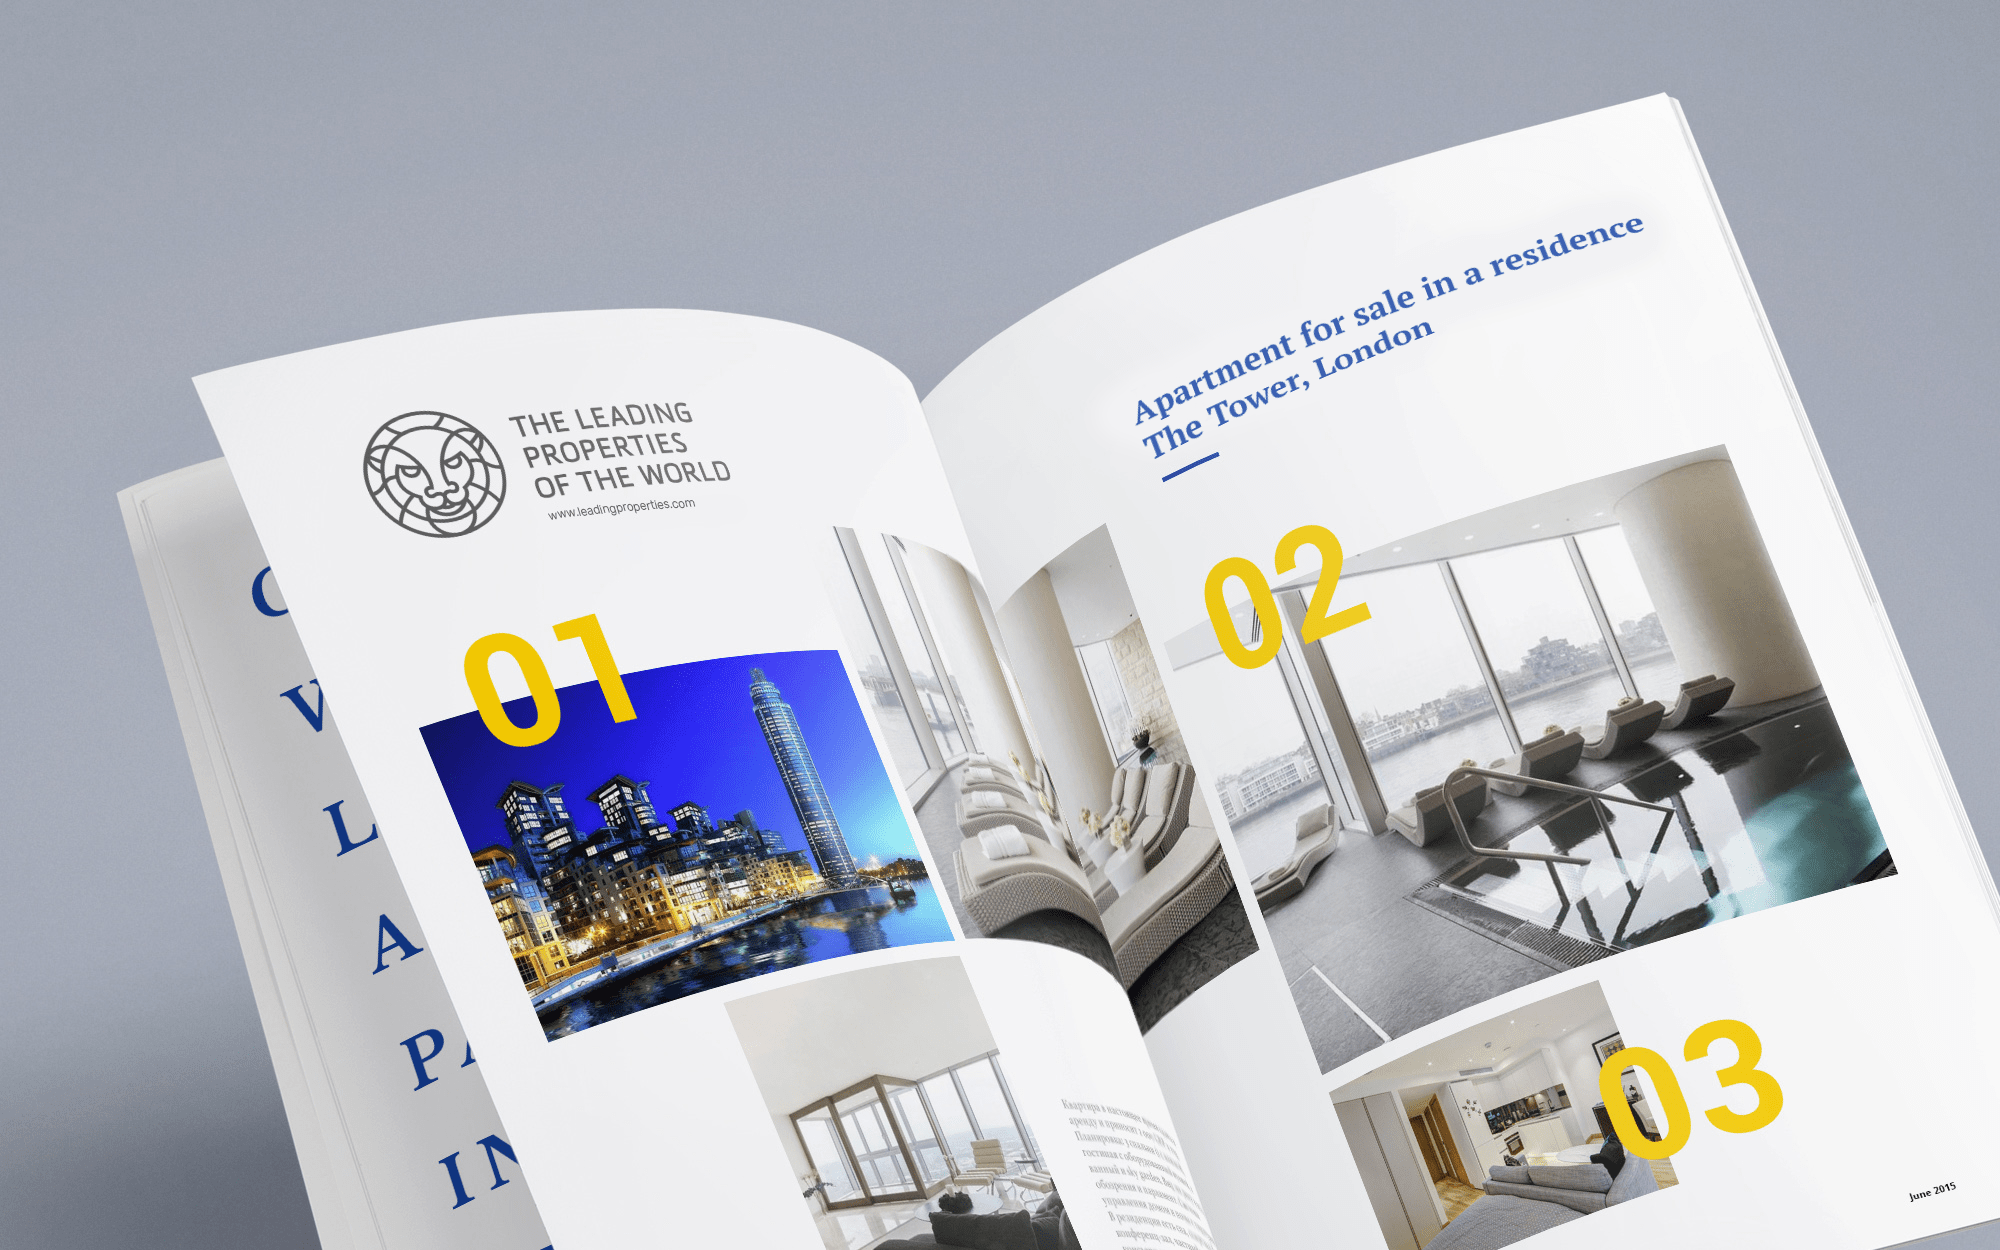 Luxury real estate booklet design sample.